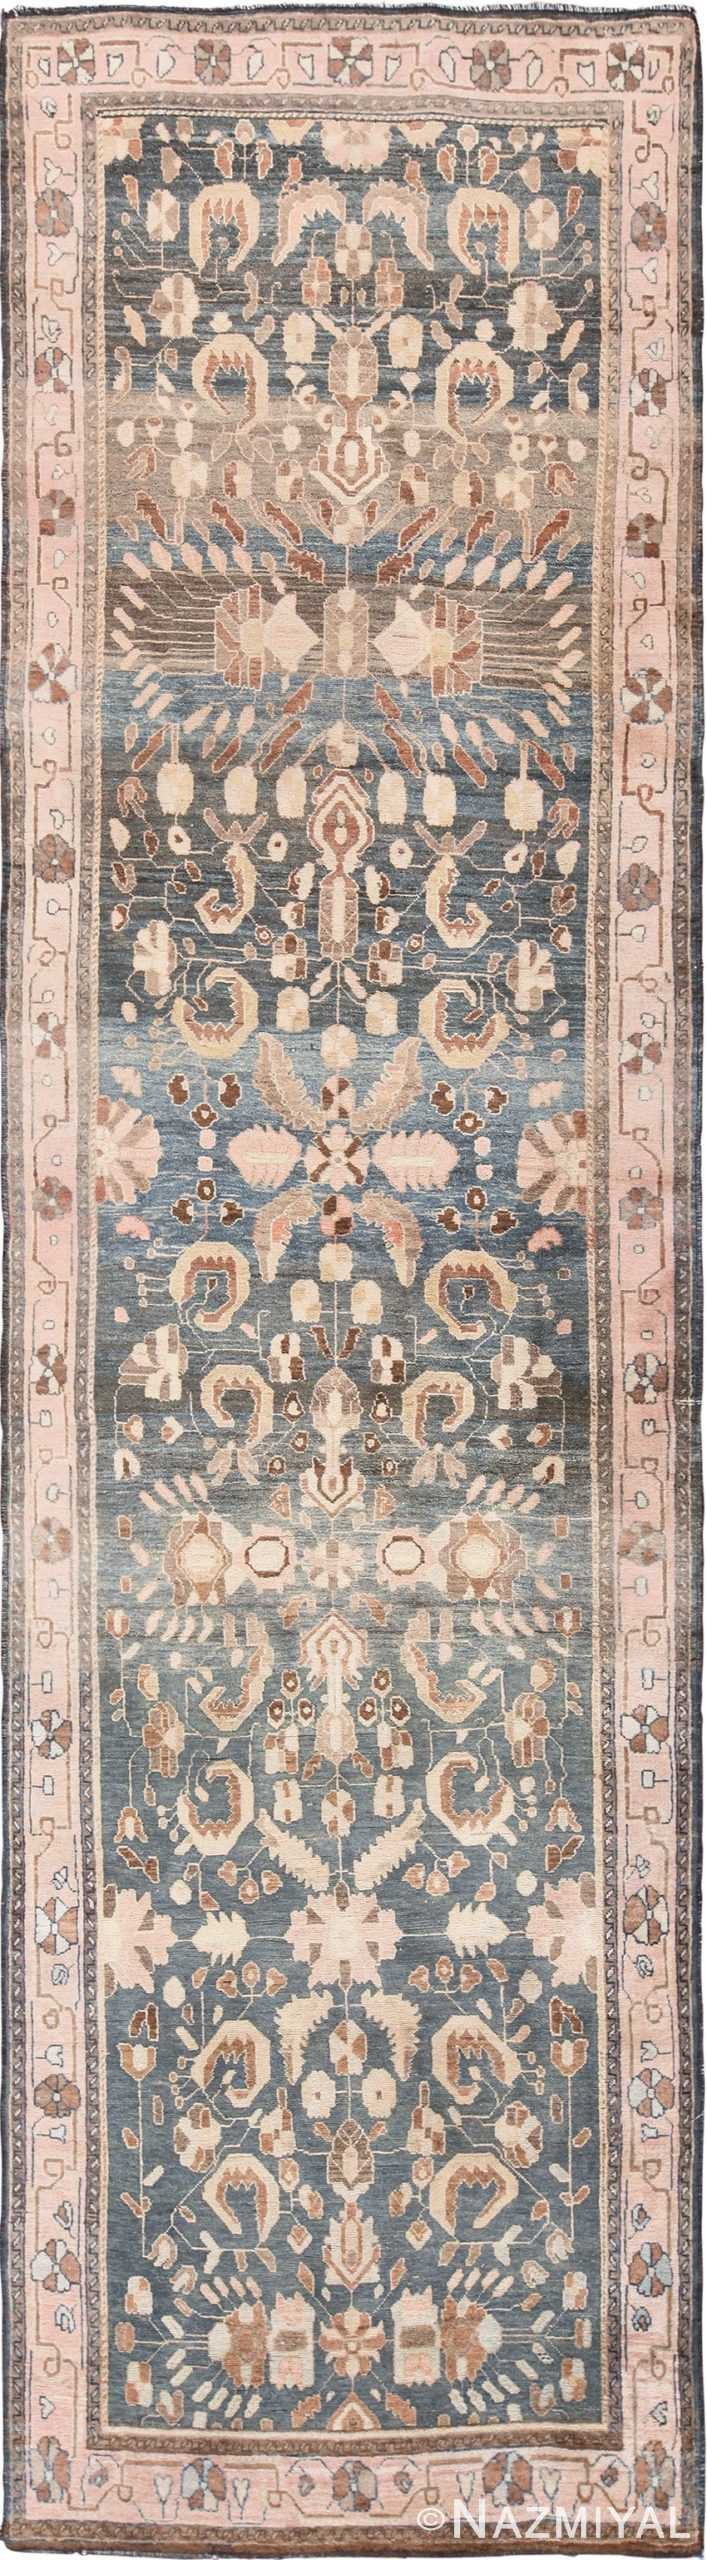 Grey Blue Antique Khorassan Persian Runner Rug 49638 by nazmiyal